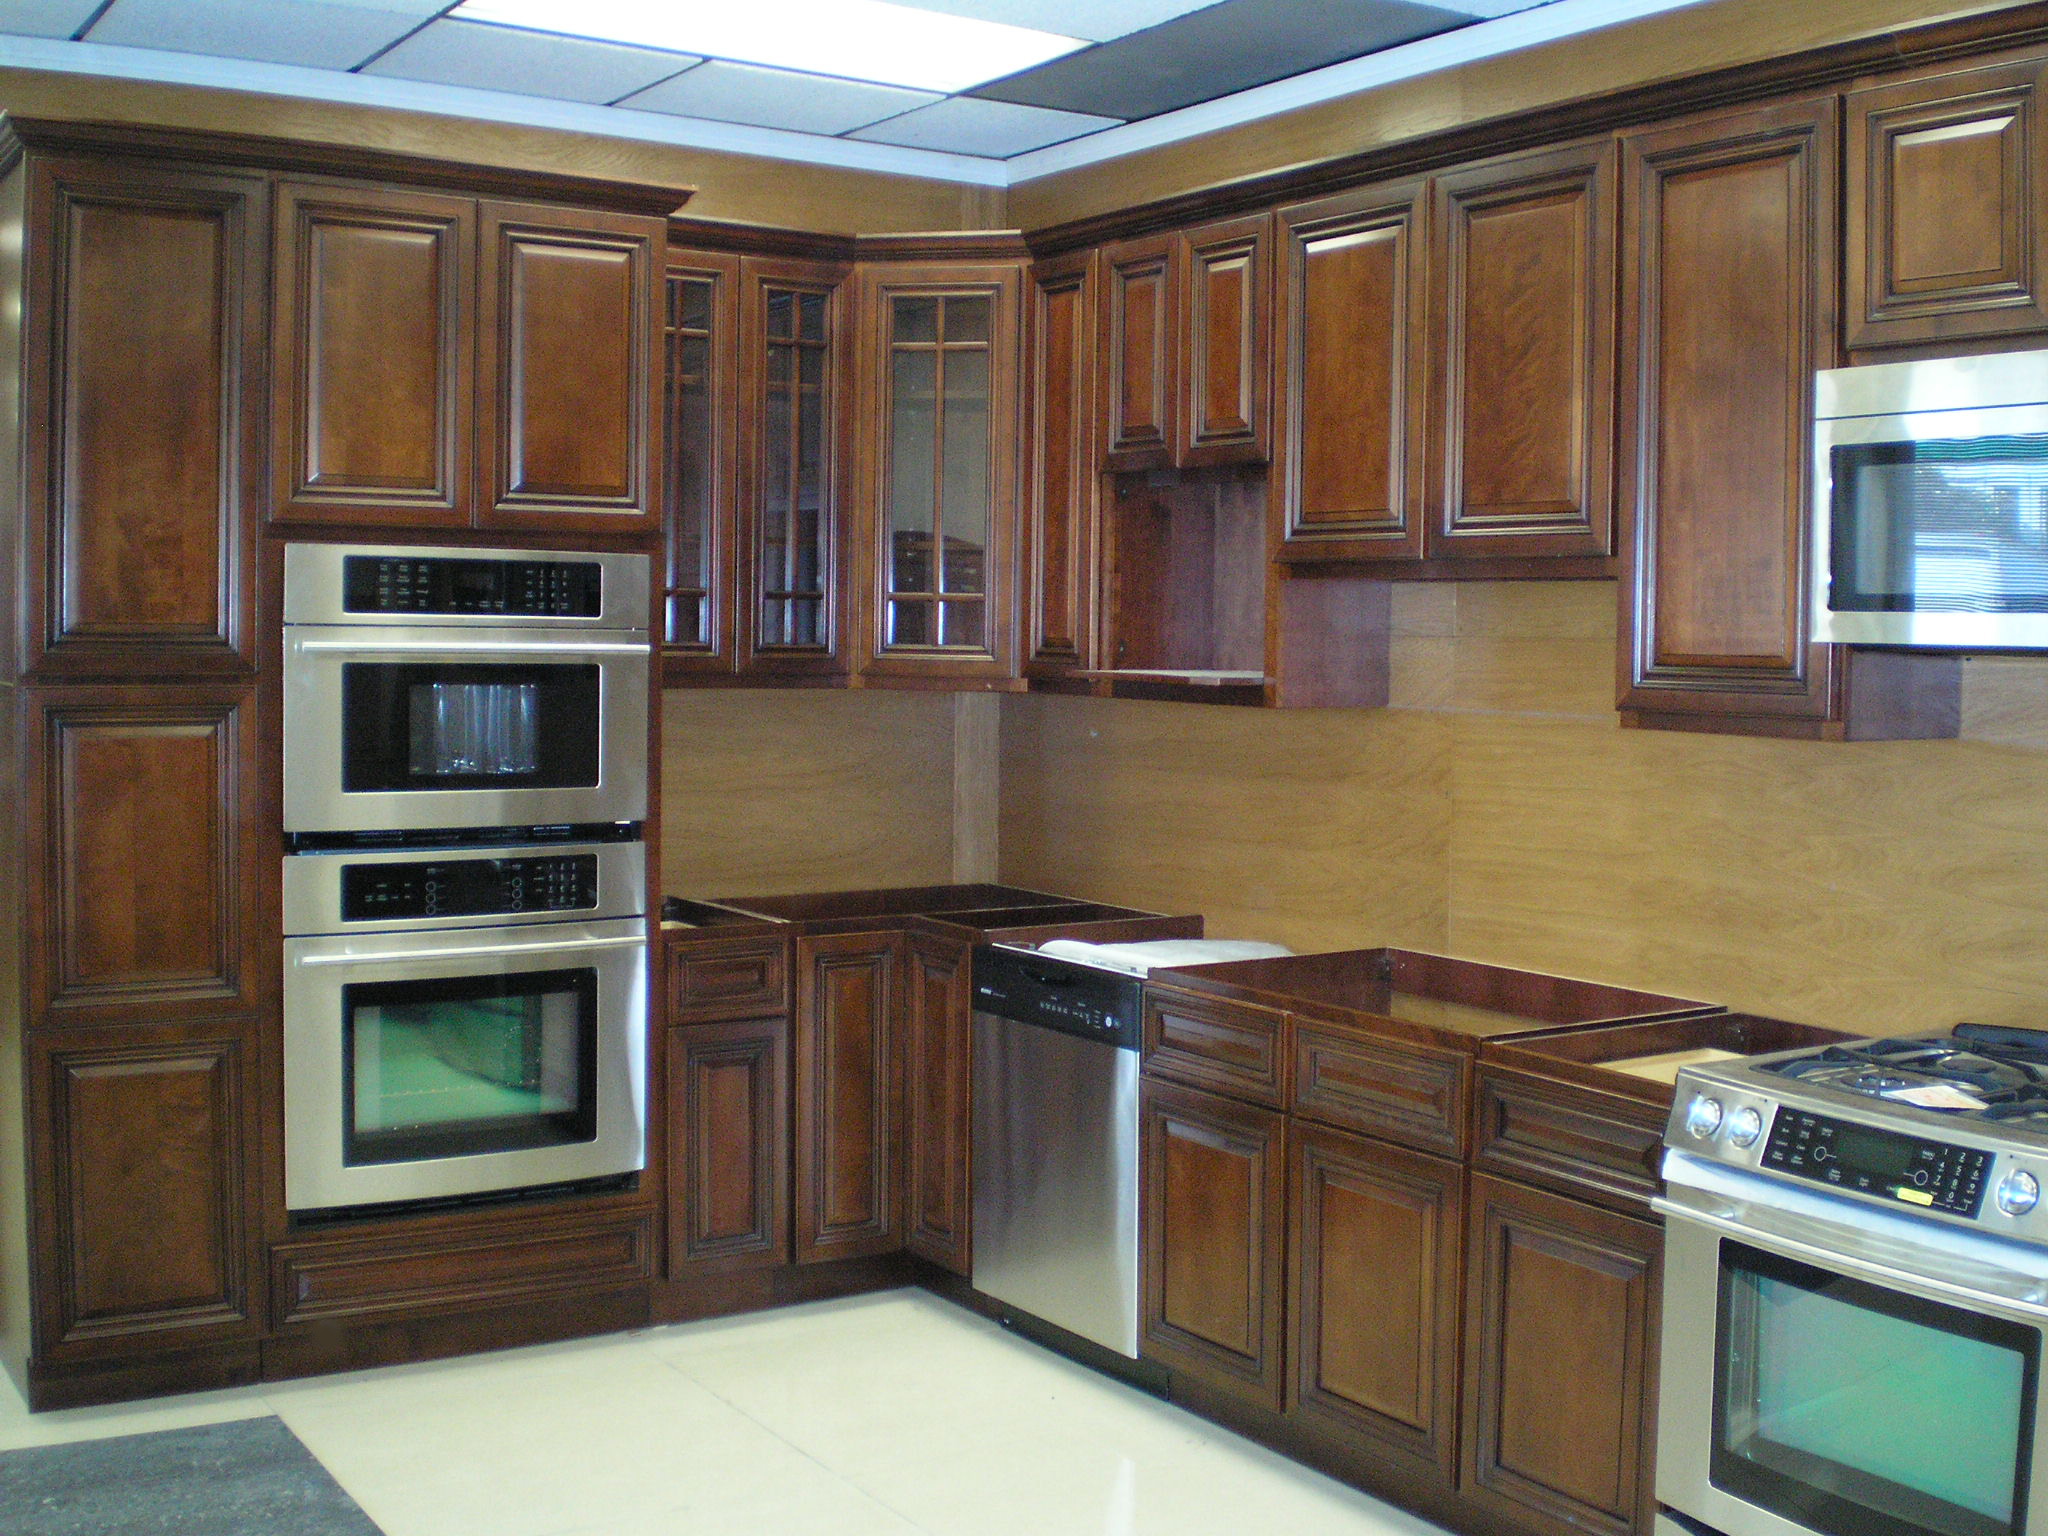 walnut kitchen cabinets brown kitchen cabinets Gallery of Our Exclusive All Wood Cabinetry